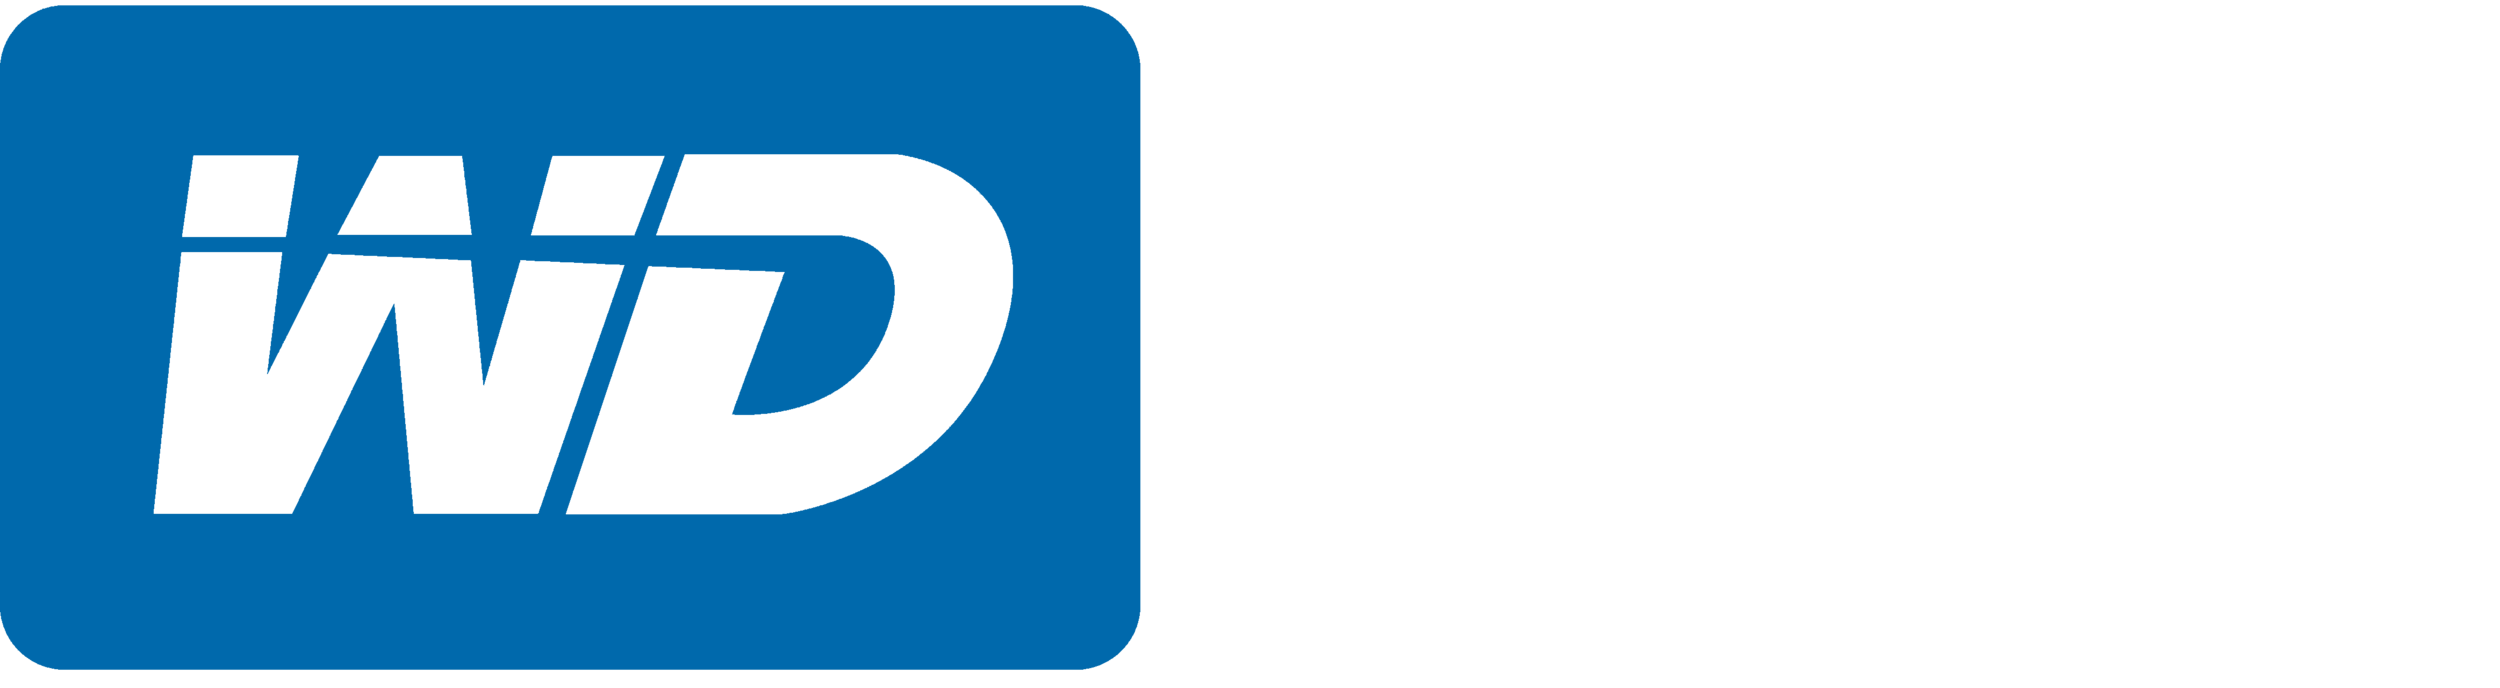 western digital with writing_for web_dark blue.png